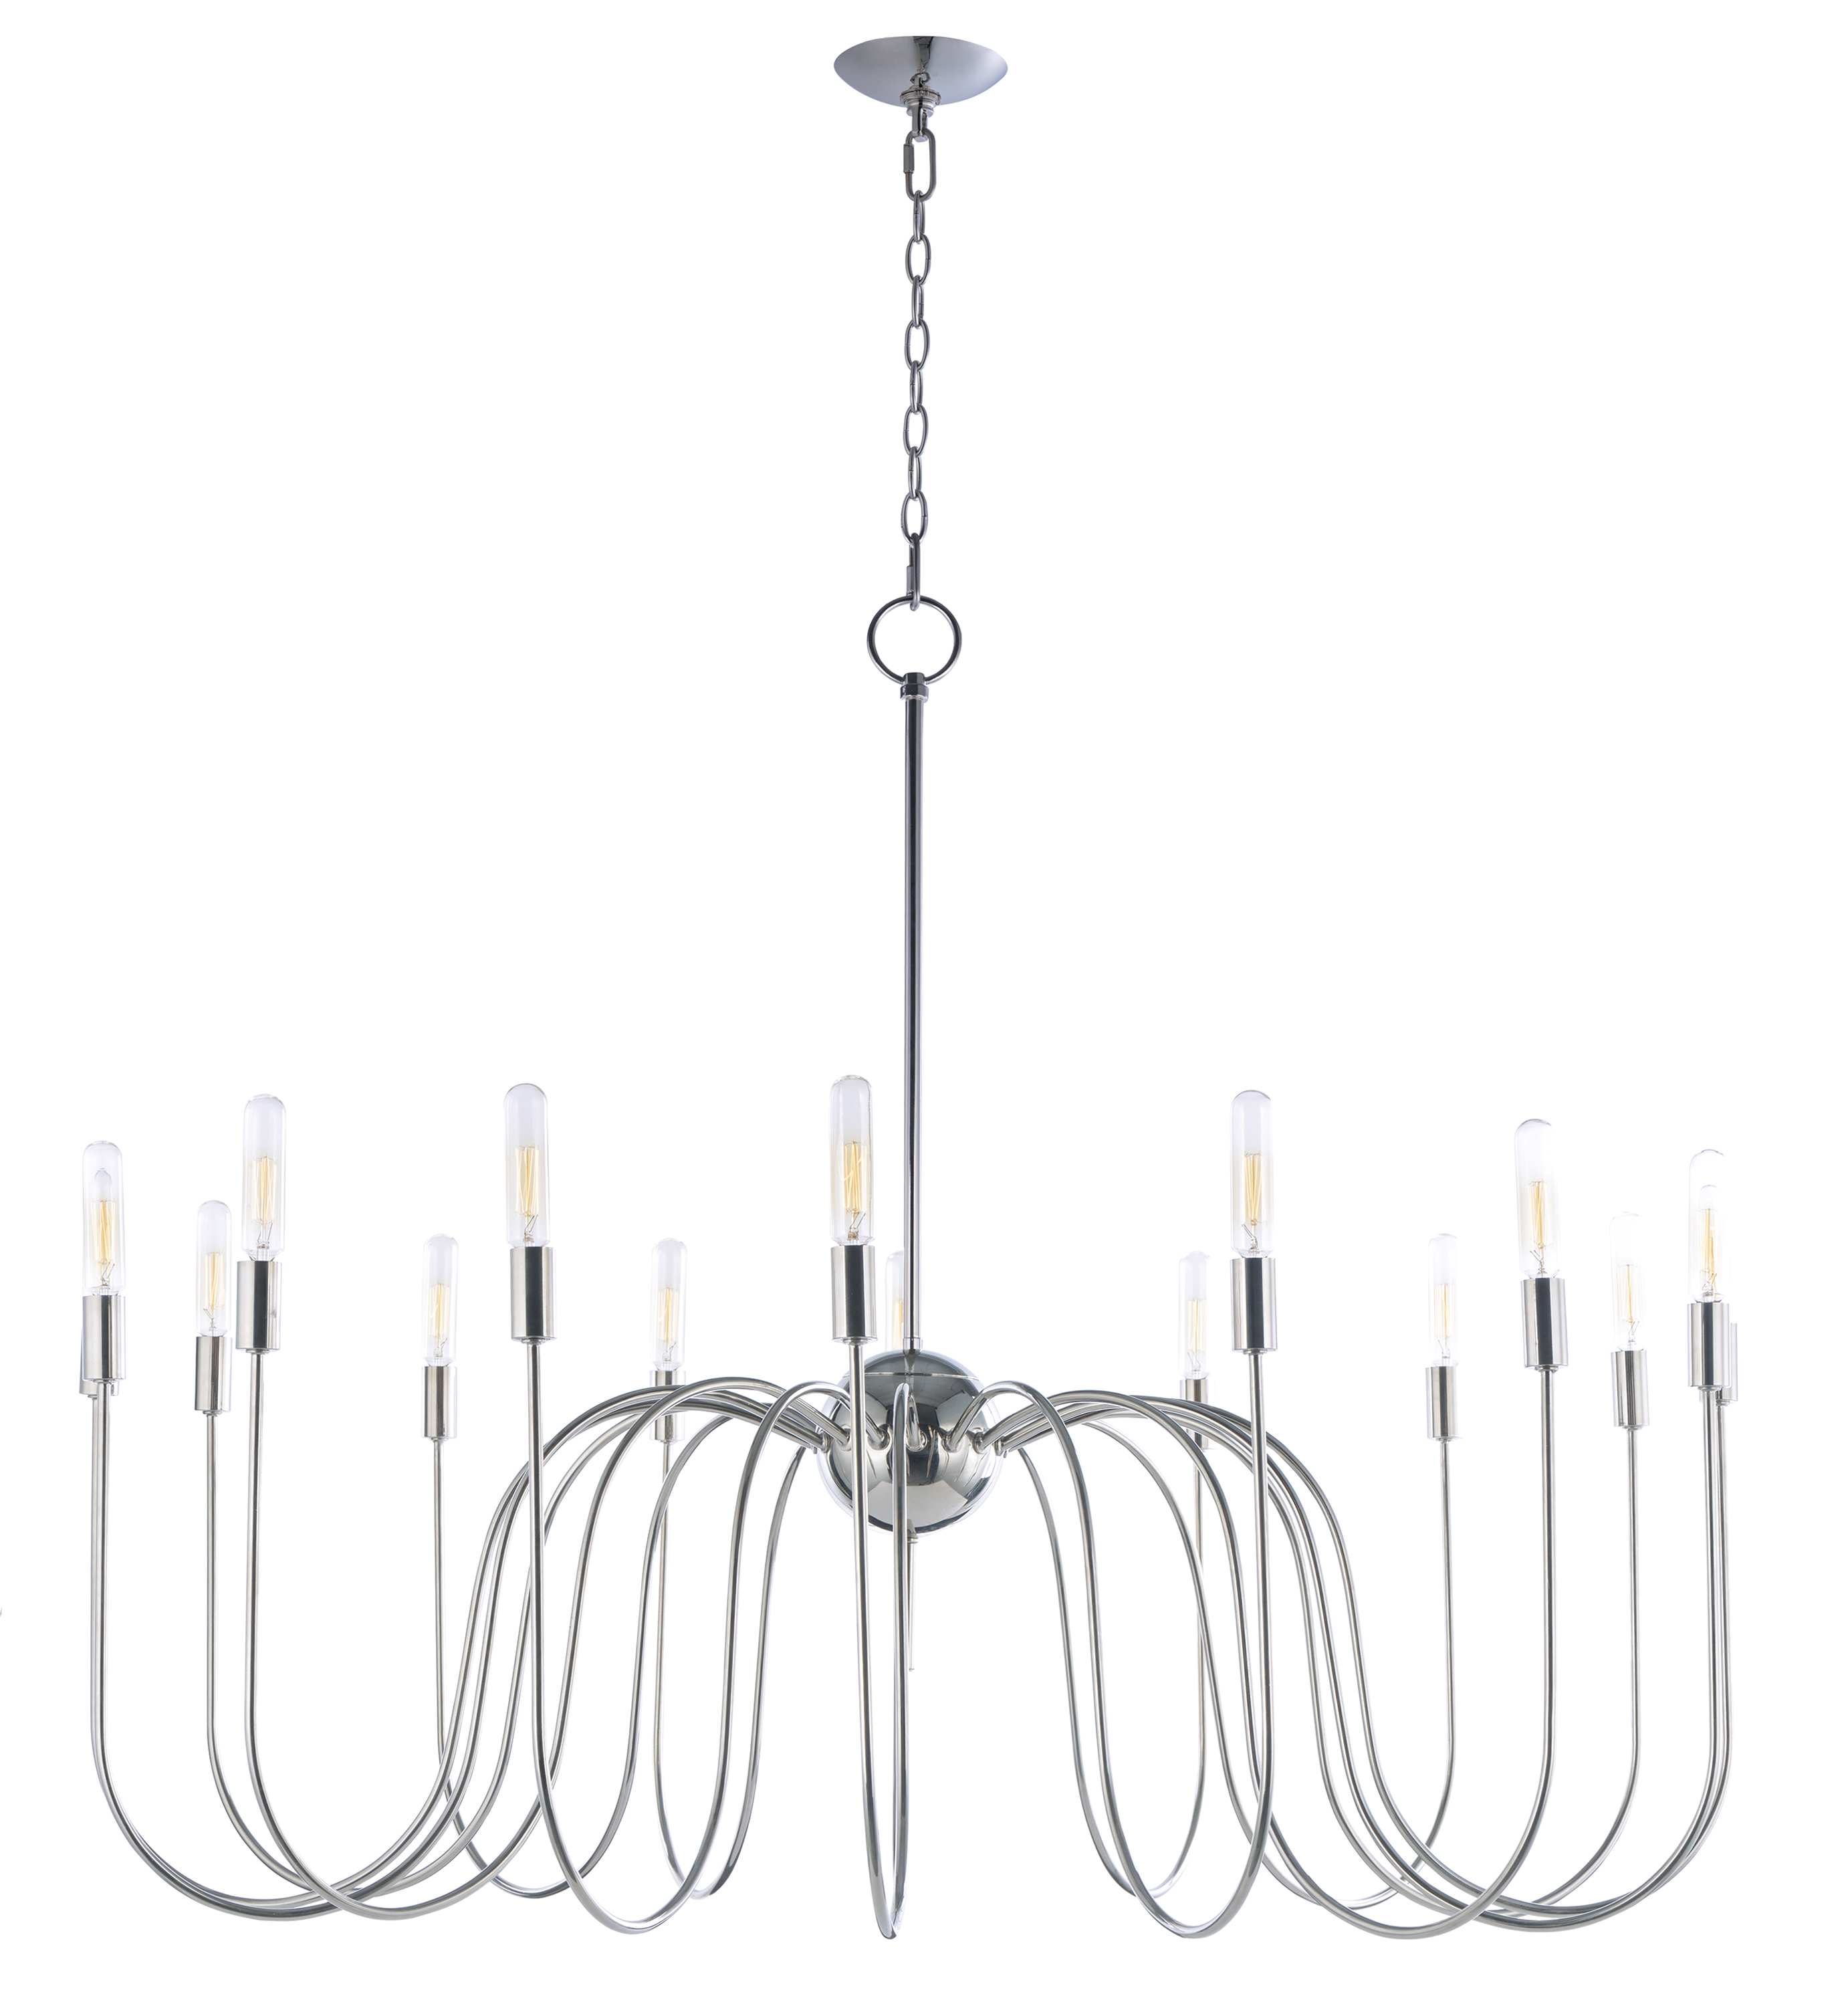 Willsburg Pendant | Maxim Lighting